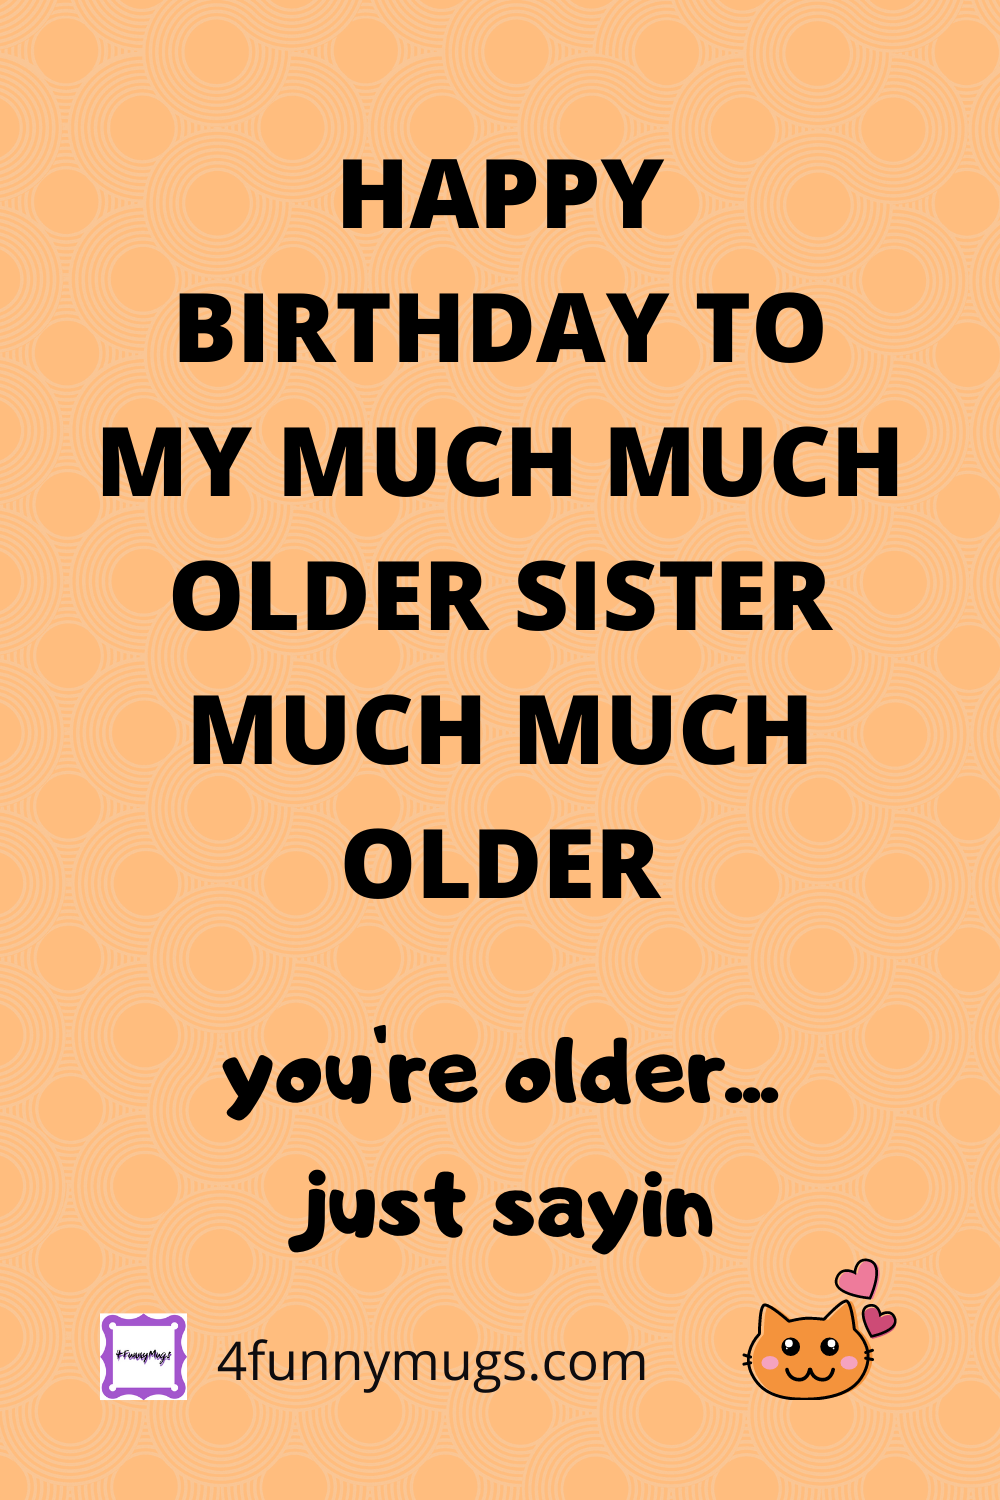 Funny Quotes For Sister S Birthday Sister Quotes Funny Sister Quotes Happy Birthday Me